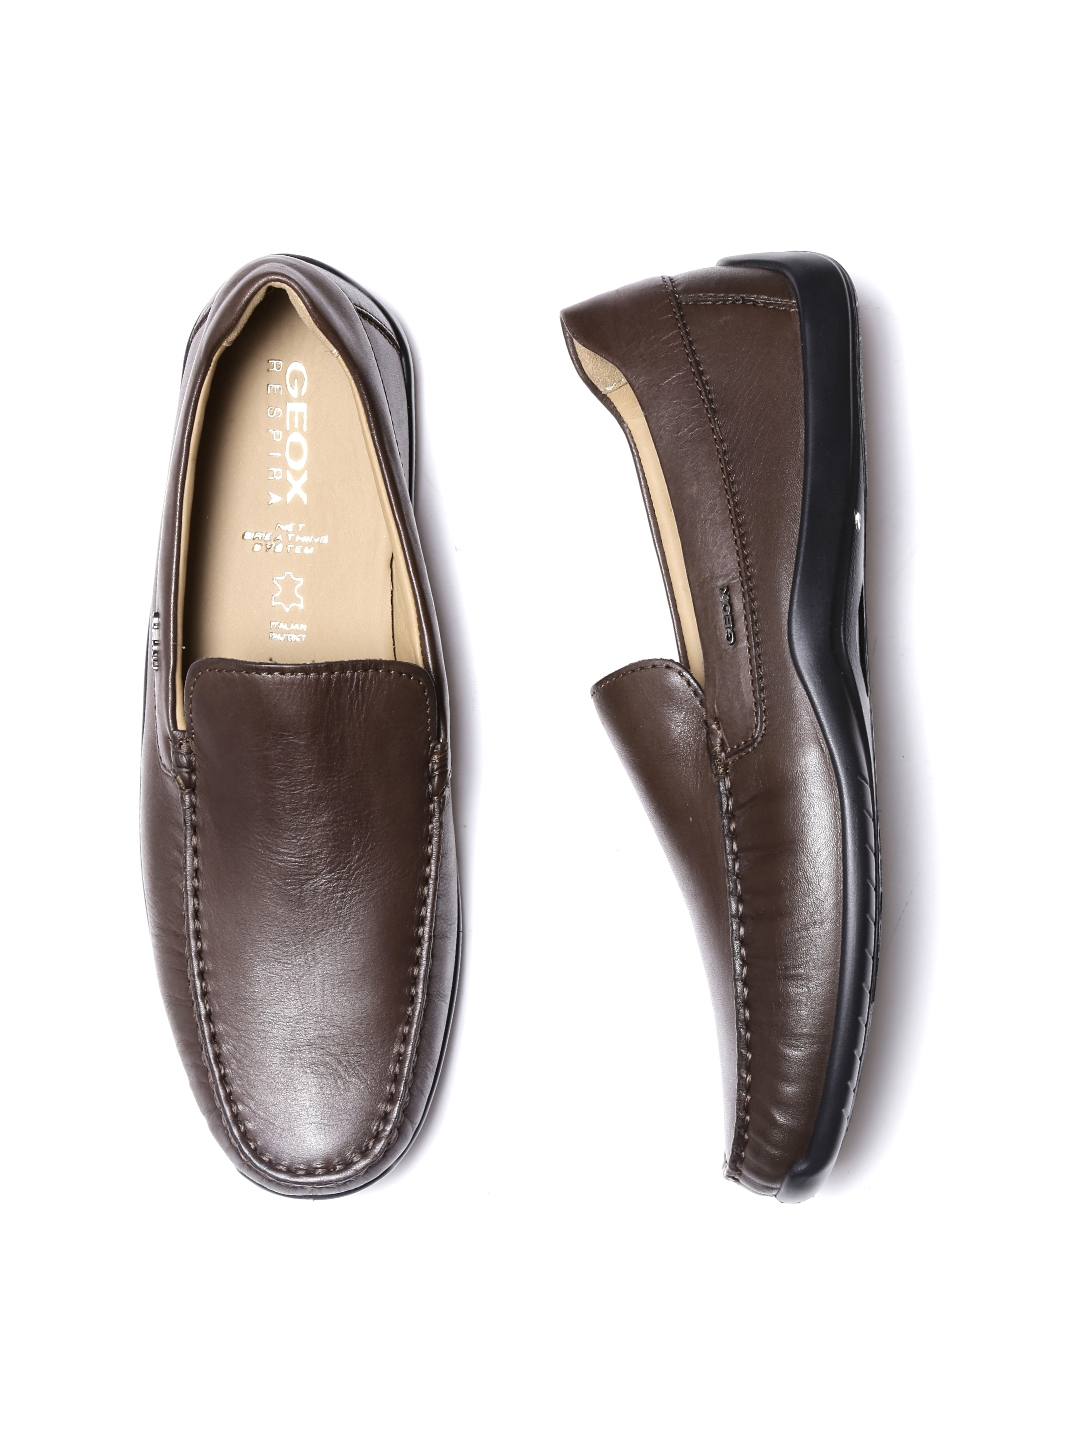 7322ac268cded Buy GEOX Respira Men Coffee Brown Breathable Italian Patent Leather Loafers  - Casual Shoes for Men 1358118 | Myntra